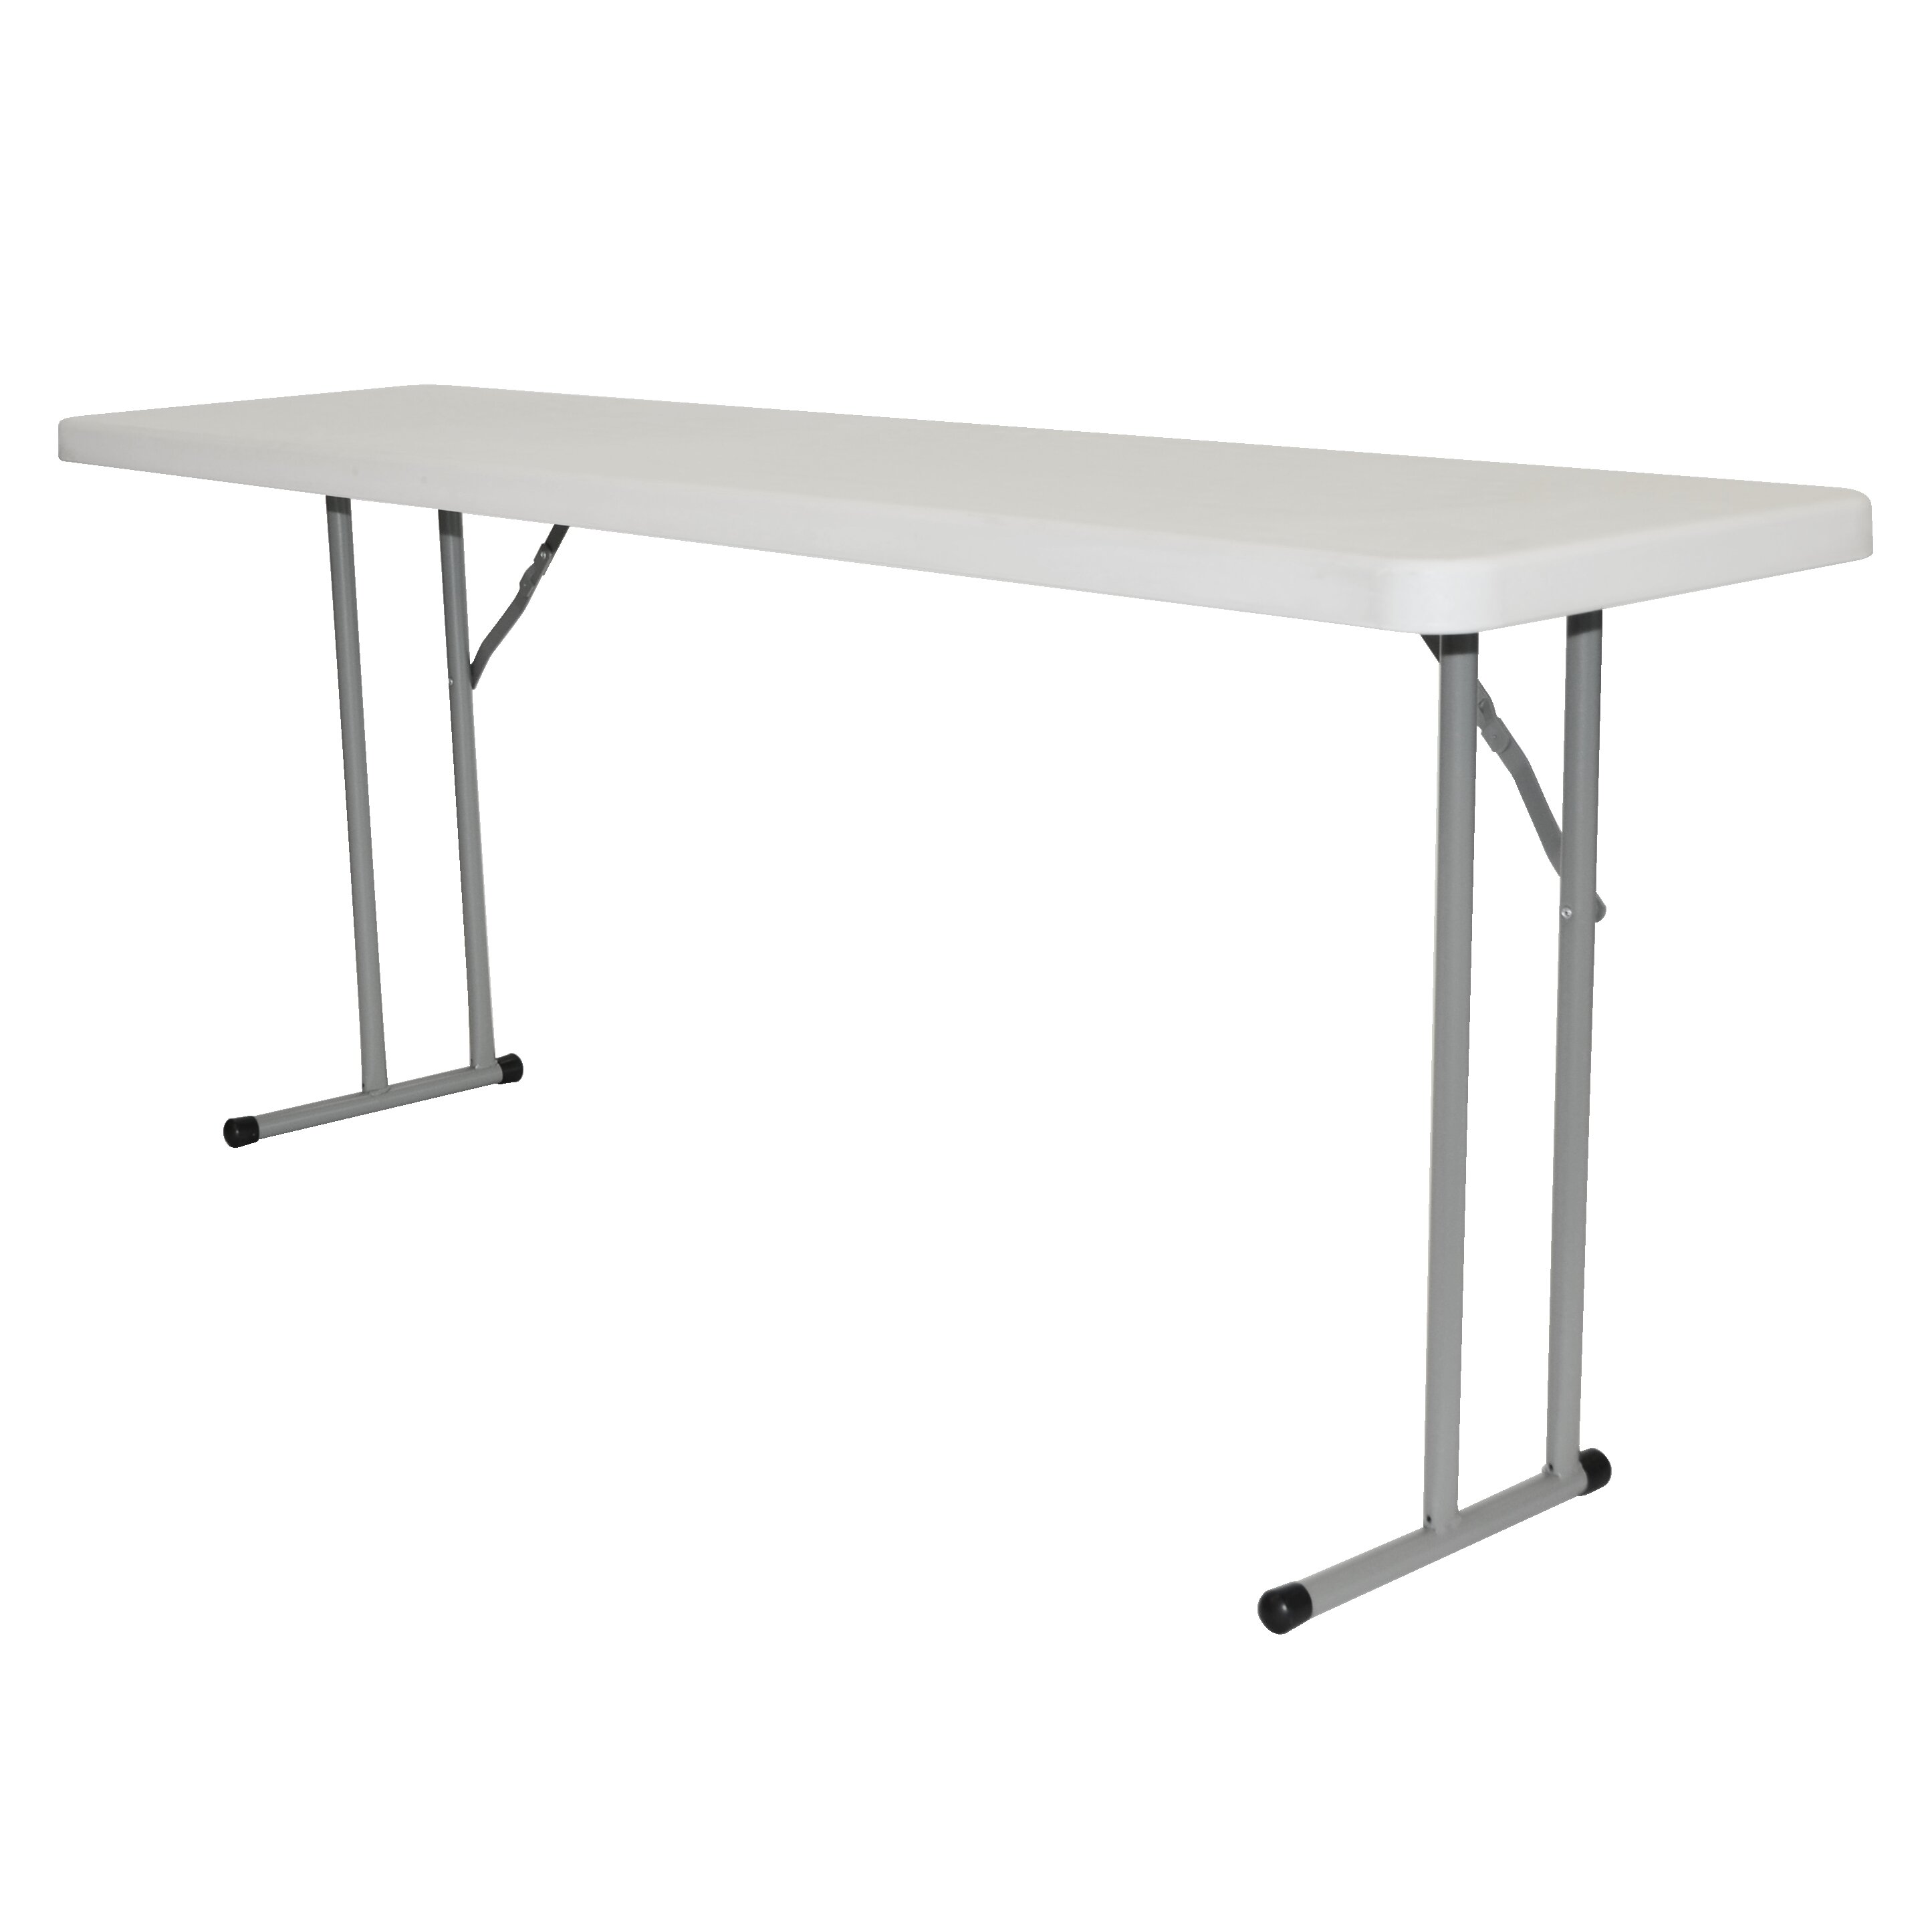 Giant 96 Or More Metal Folding Tables You Ll Love In 2021 Wayfair